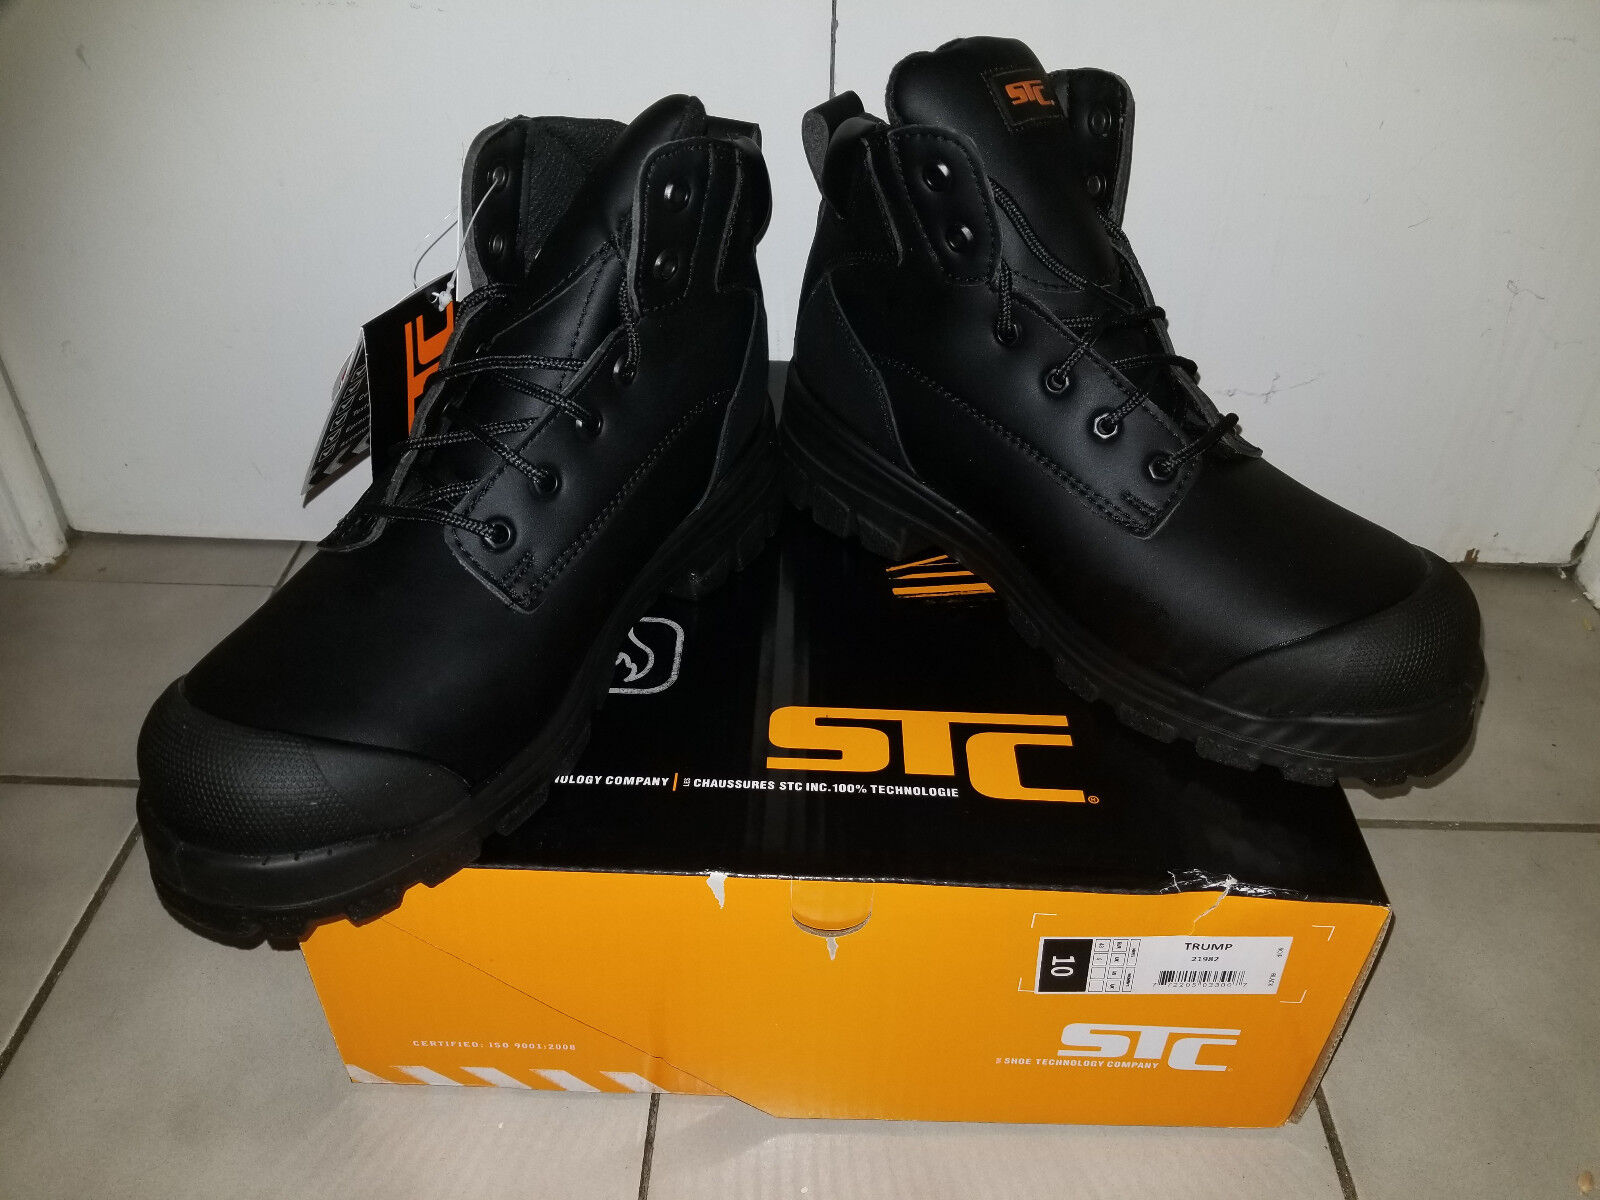 New STC Steeltoes work safety Stiefel , 6  , TRUMP 21982, Größe US 10, CSA approved